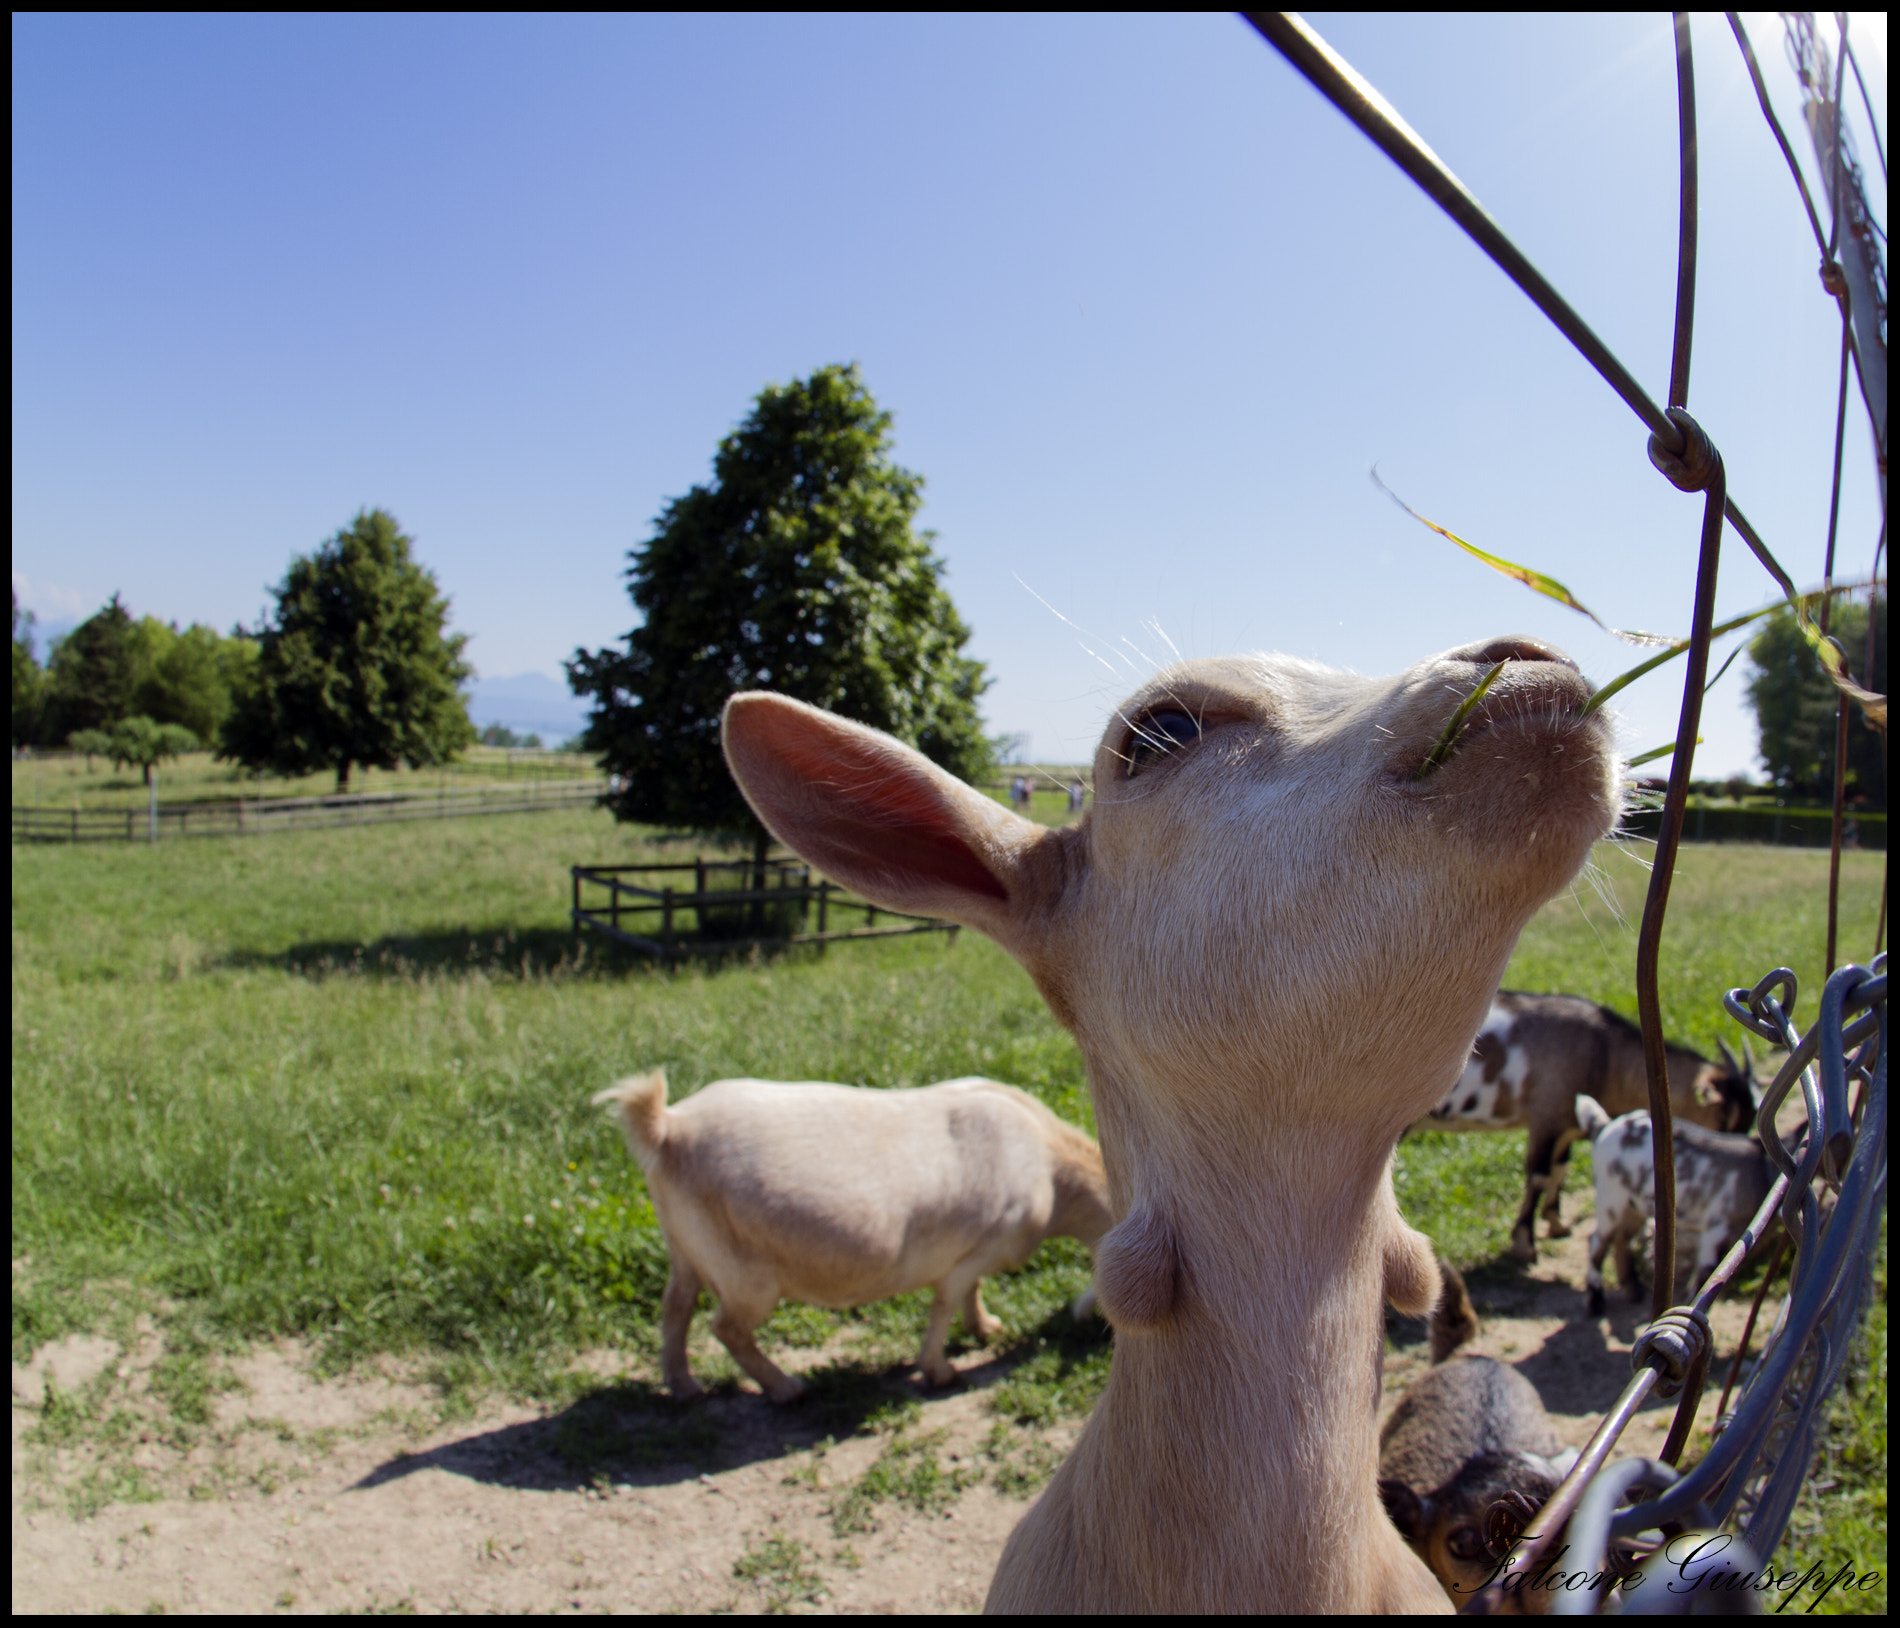 Photograph Baby Goat by Falcone Giuseppe on 500px